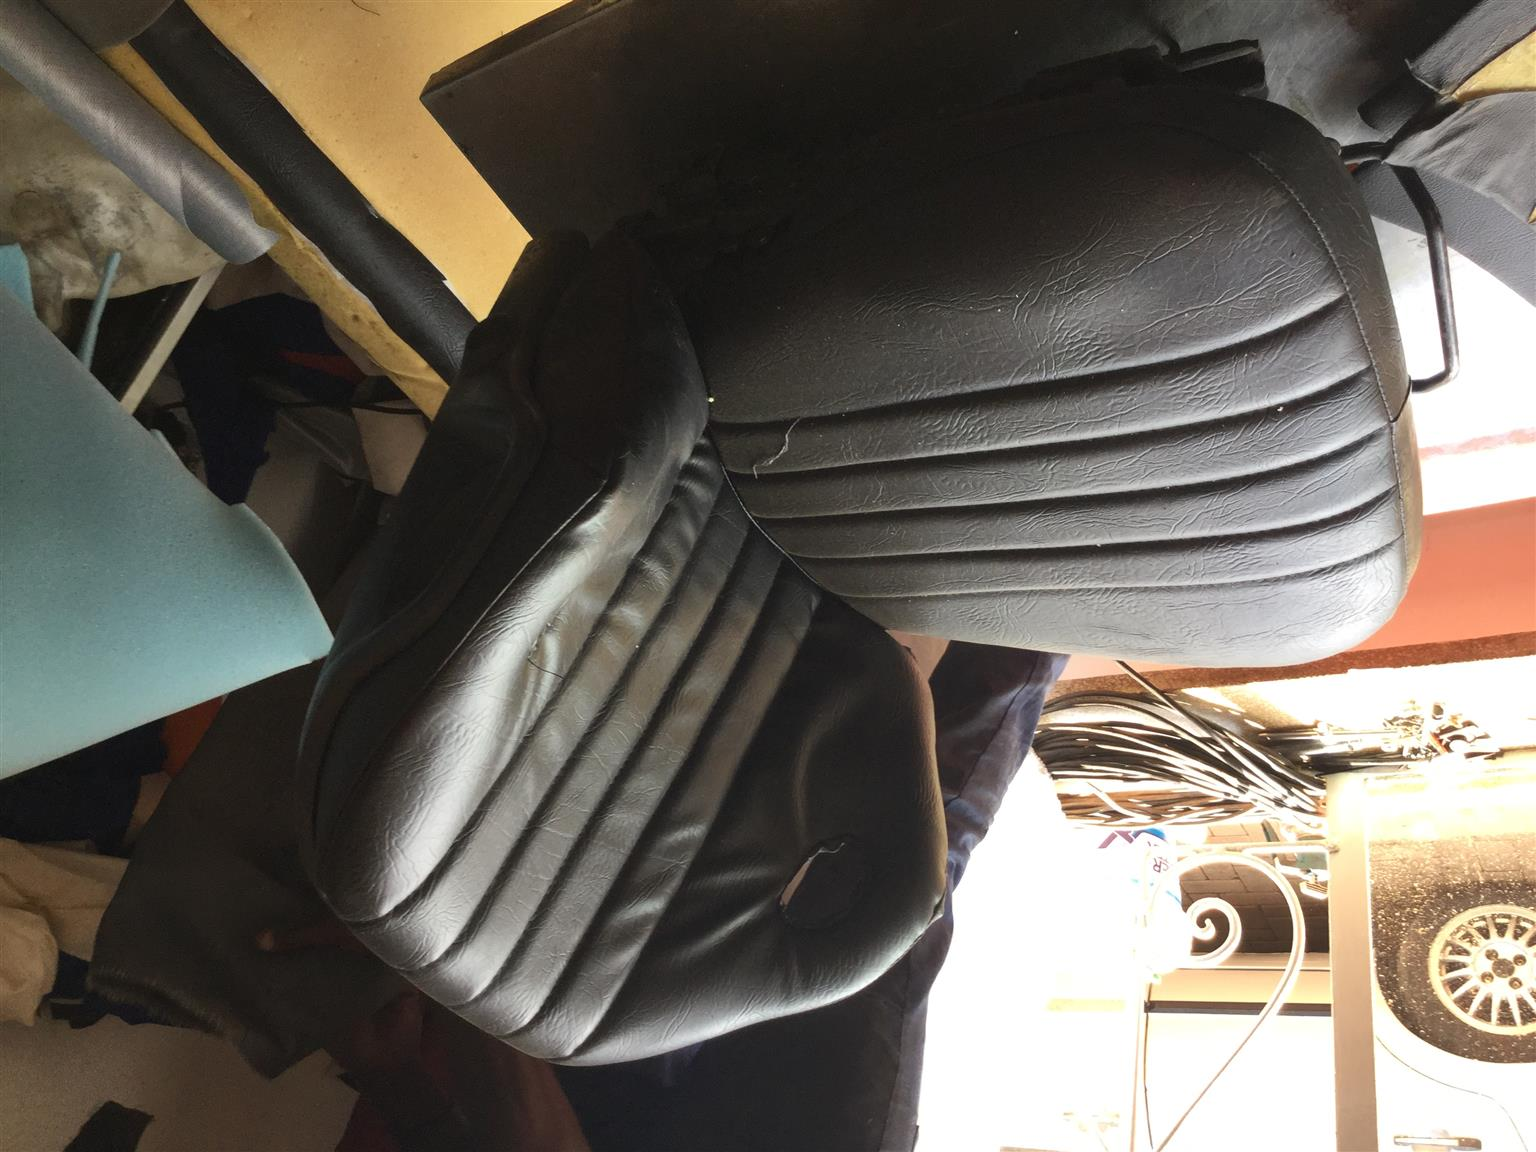 Fork lift seats reupholstered for R700